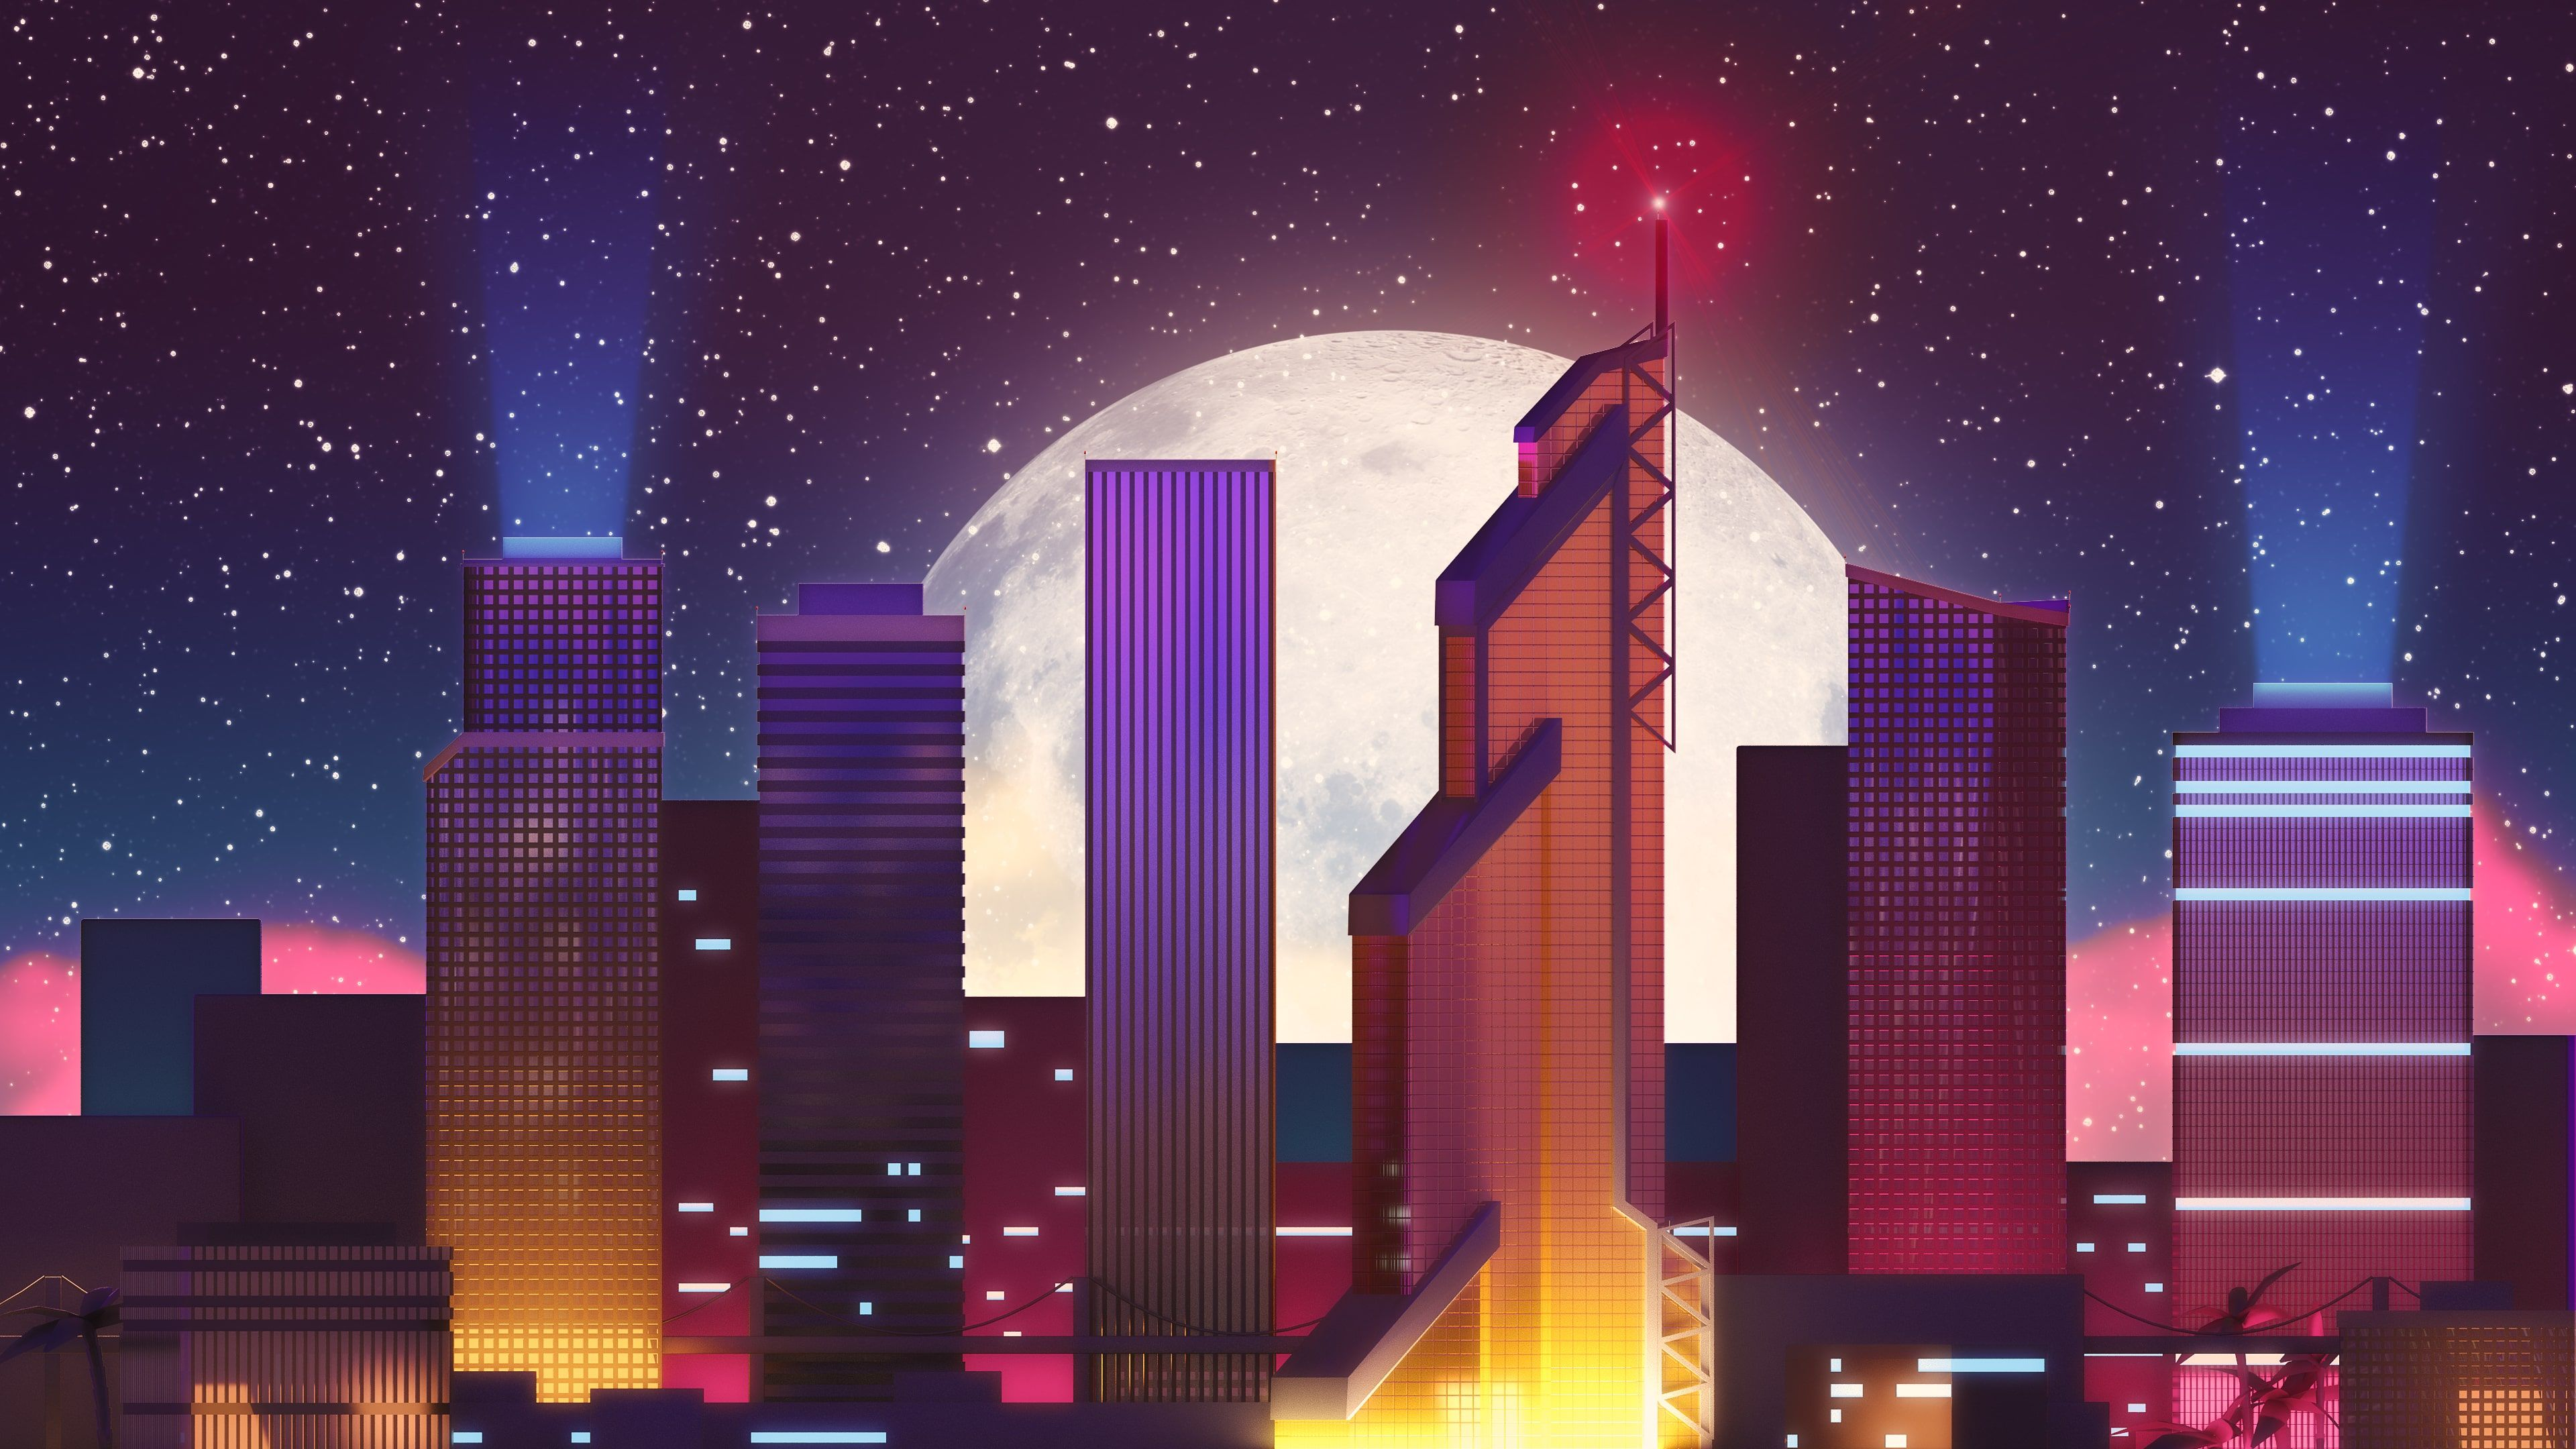 Moscow Skyscrapers Retro Neon Moon Moscow Skyscrapers Retro Neon Moon is an HD desktop wallpaper posted in our free image collection of abstract wallpapers.